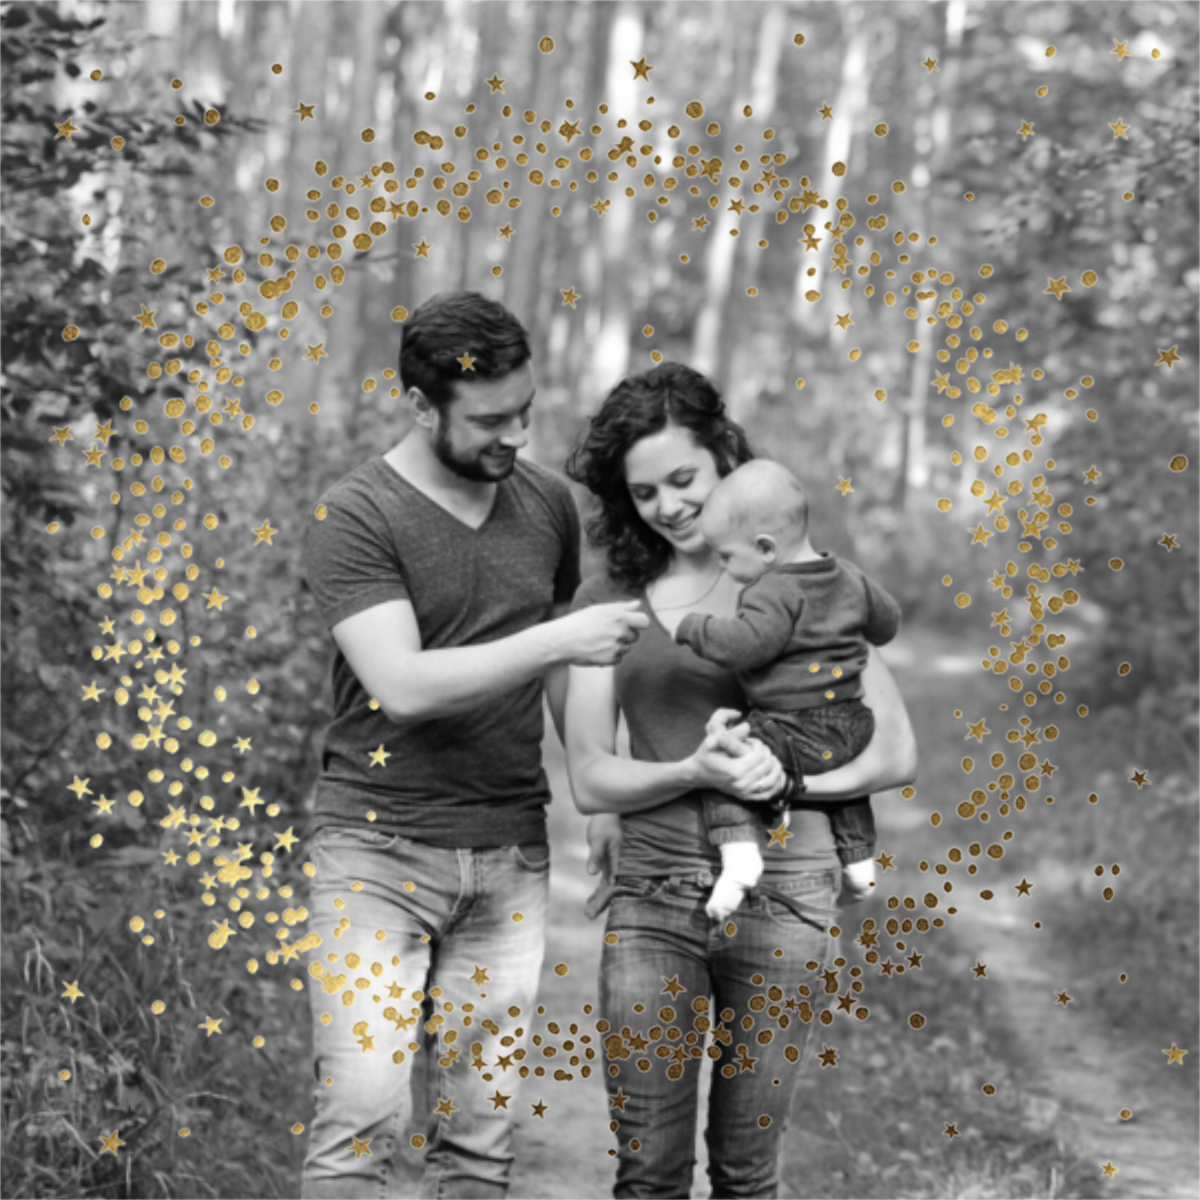 Wreath of Stars Photo - Paperless Post - Holiday cards